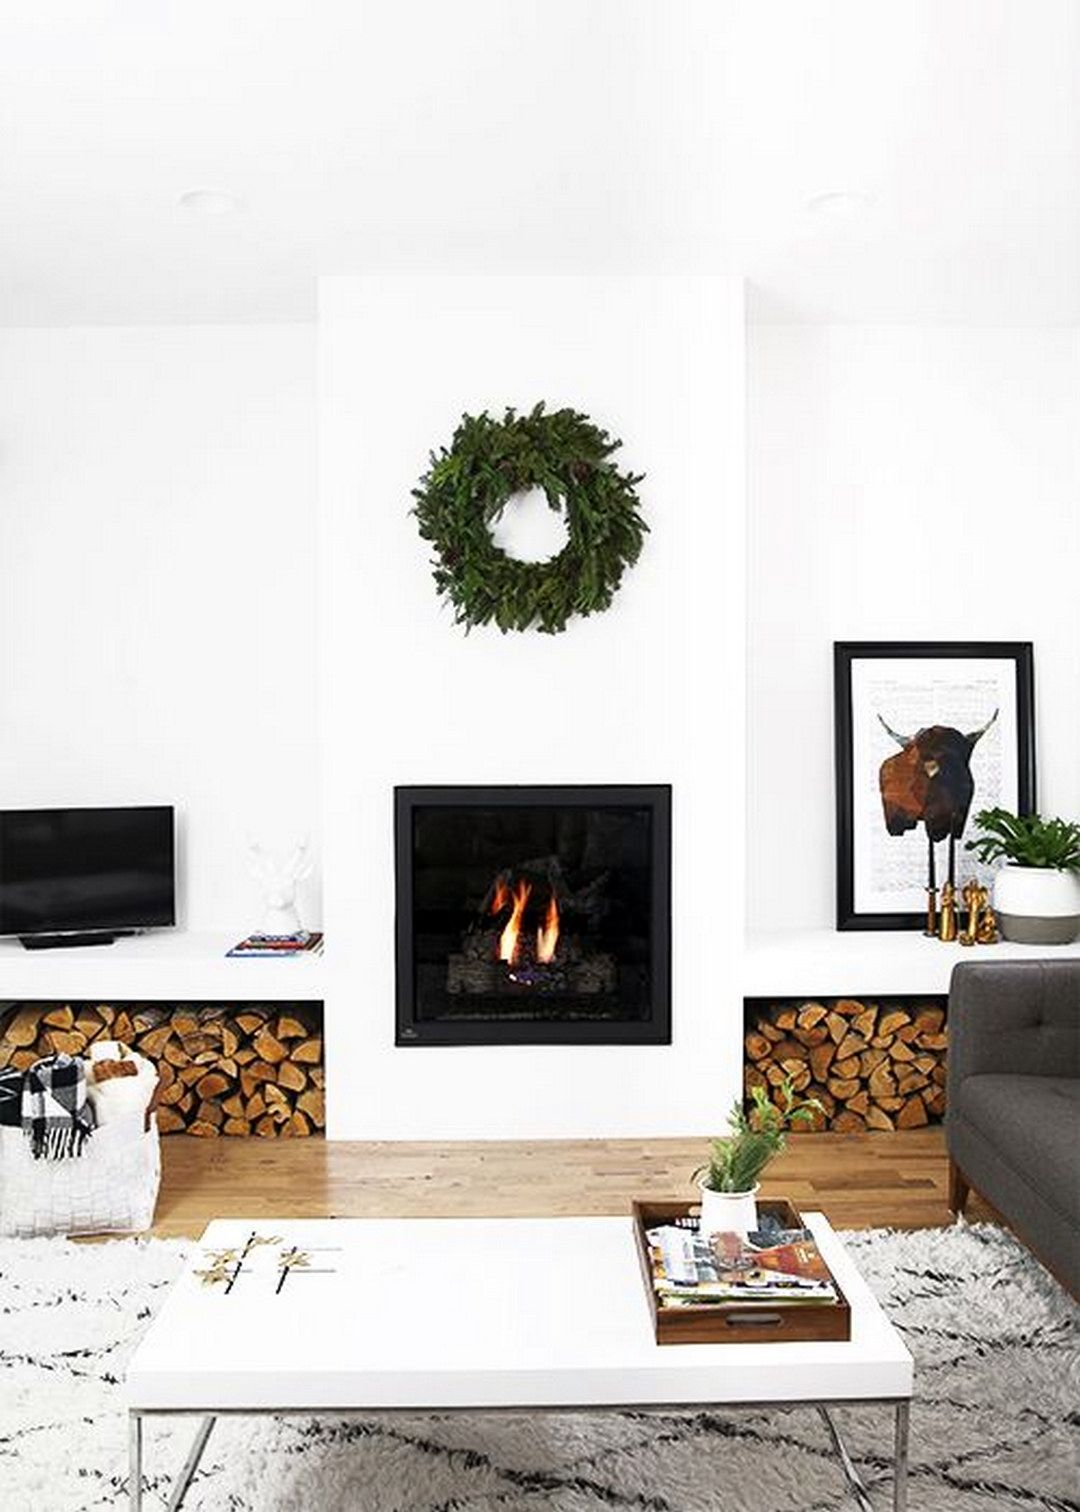 beautiful minimal holiday decor ideas also interior design living room small spaces in rh pinterest